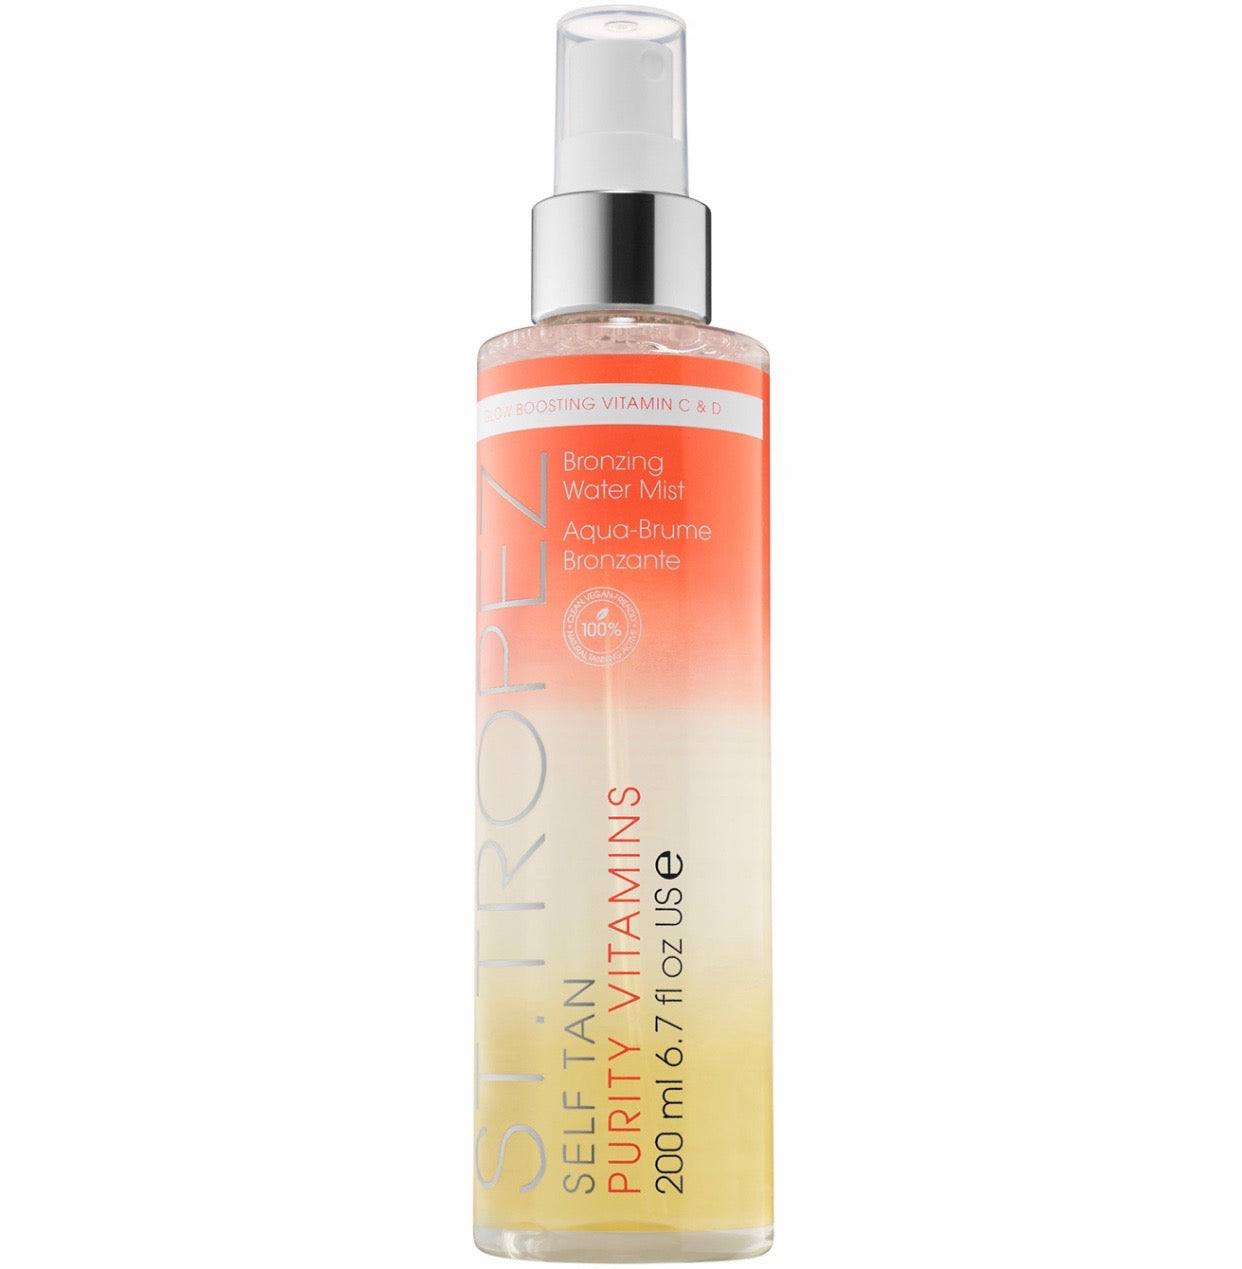 St Tropez Purity Vitamins Bronzing Water Body Mist